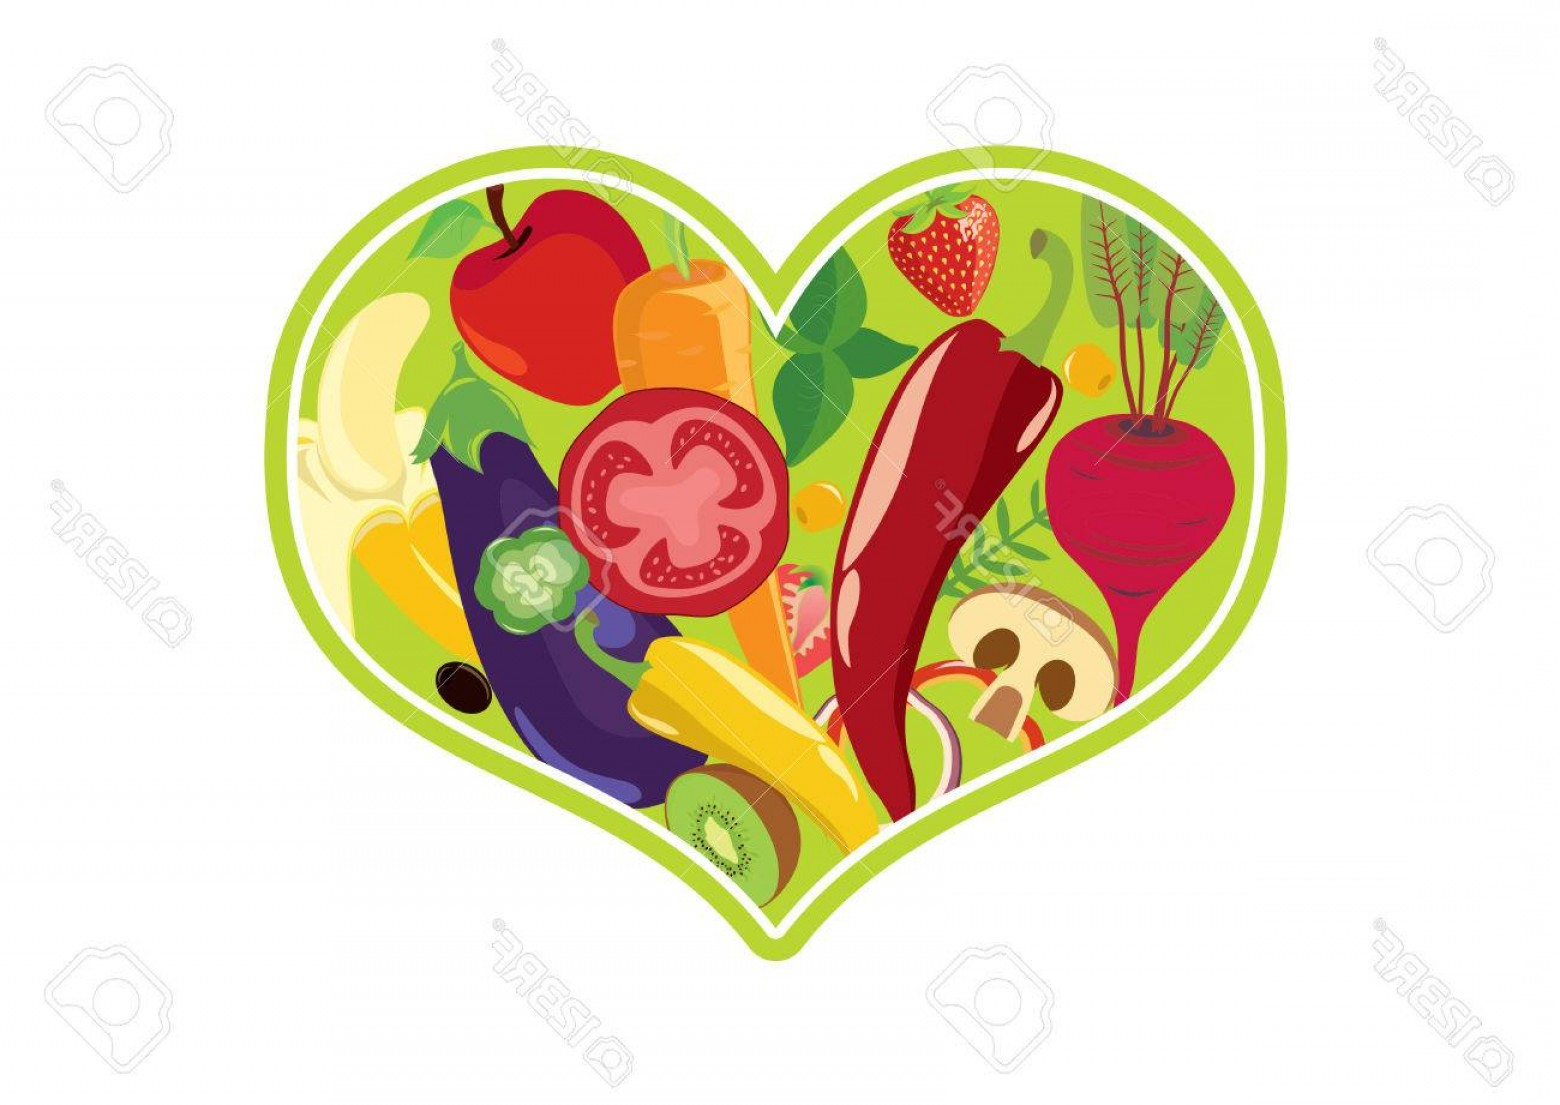 Vegan Heart Vectors: Photostock Vector Vegetable Heart Vector Fruit And Vegetable Icon Vegan Heart On White Background